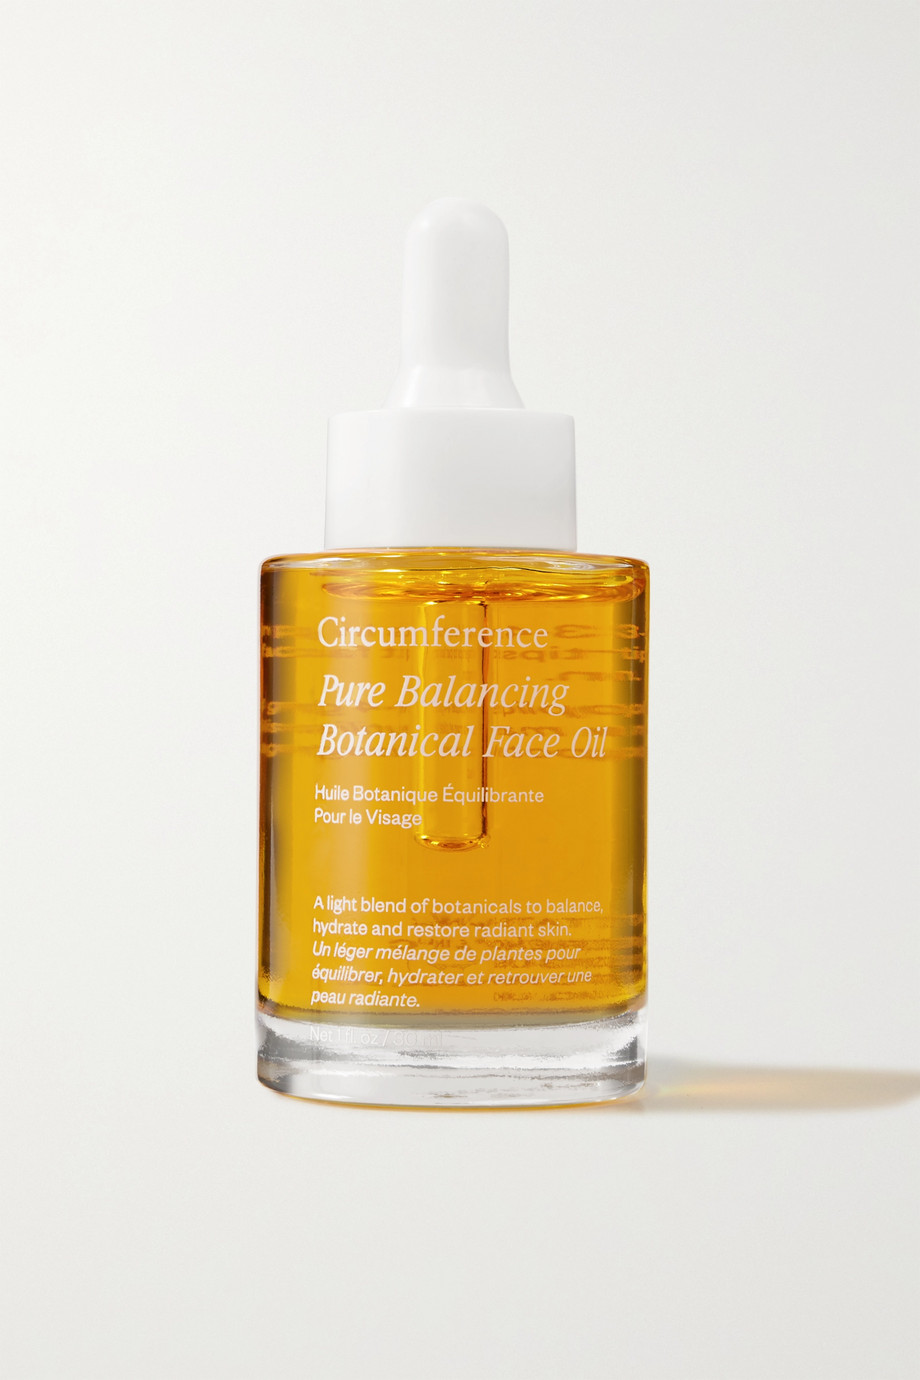 Circumference Pure Balancing Botanical Face Oil, 30ml